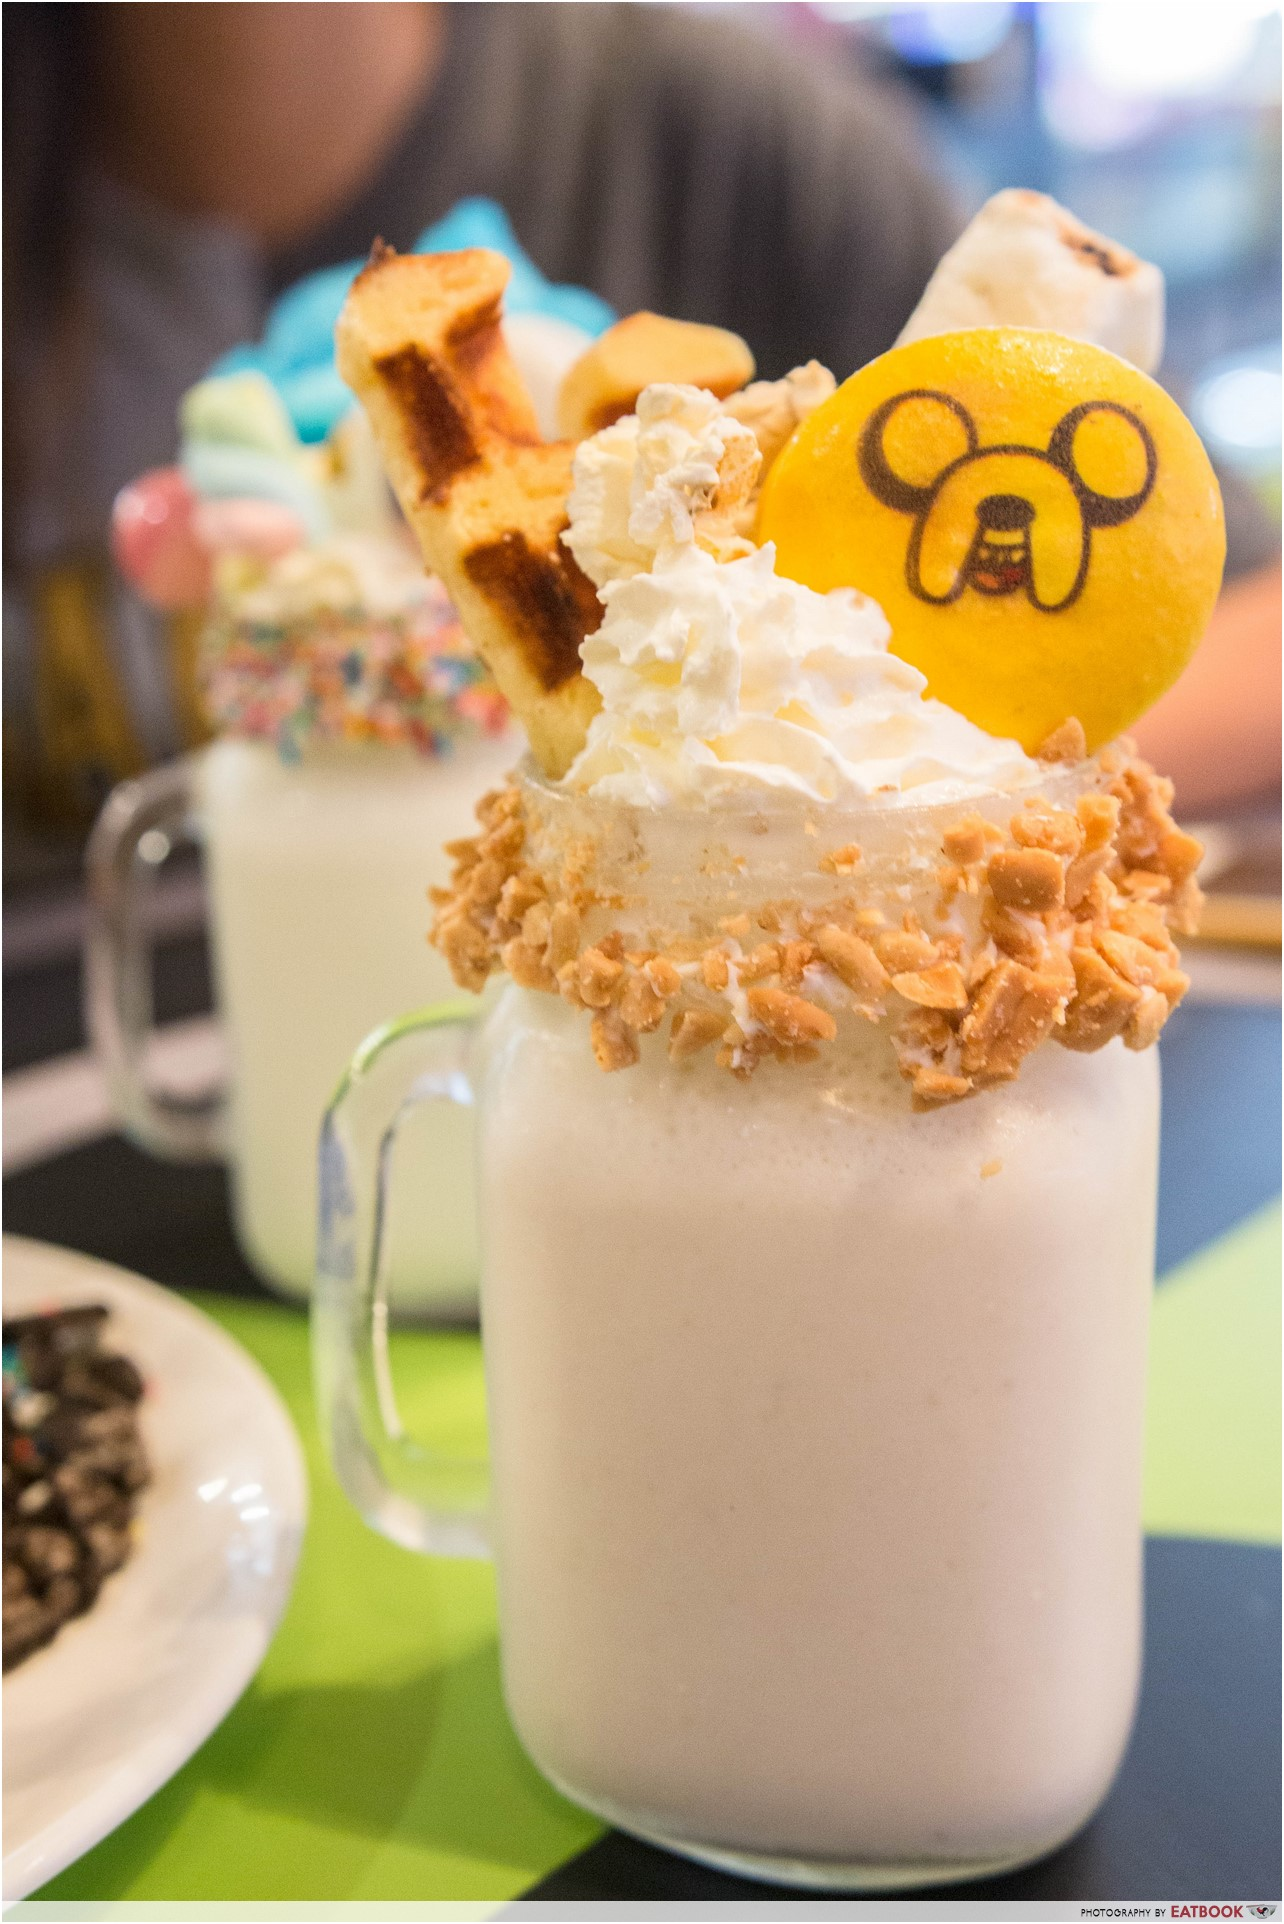 cartoon network cafe - banana milkshake